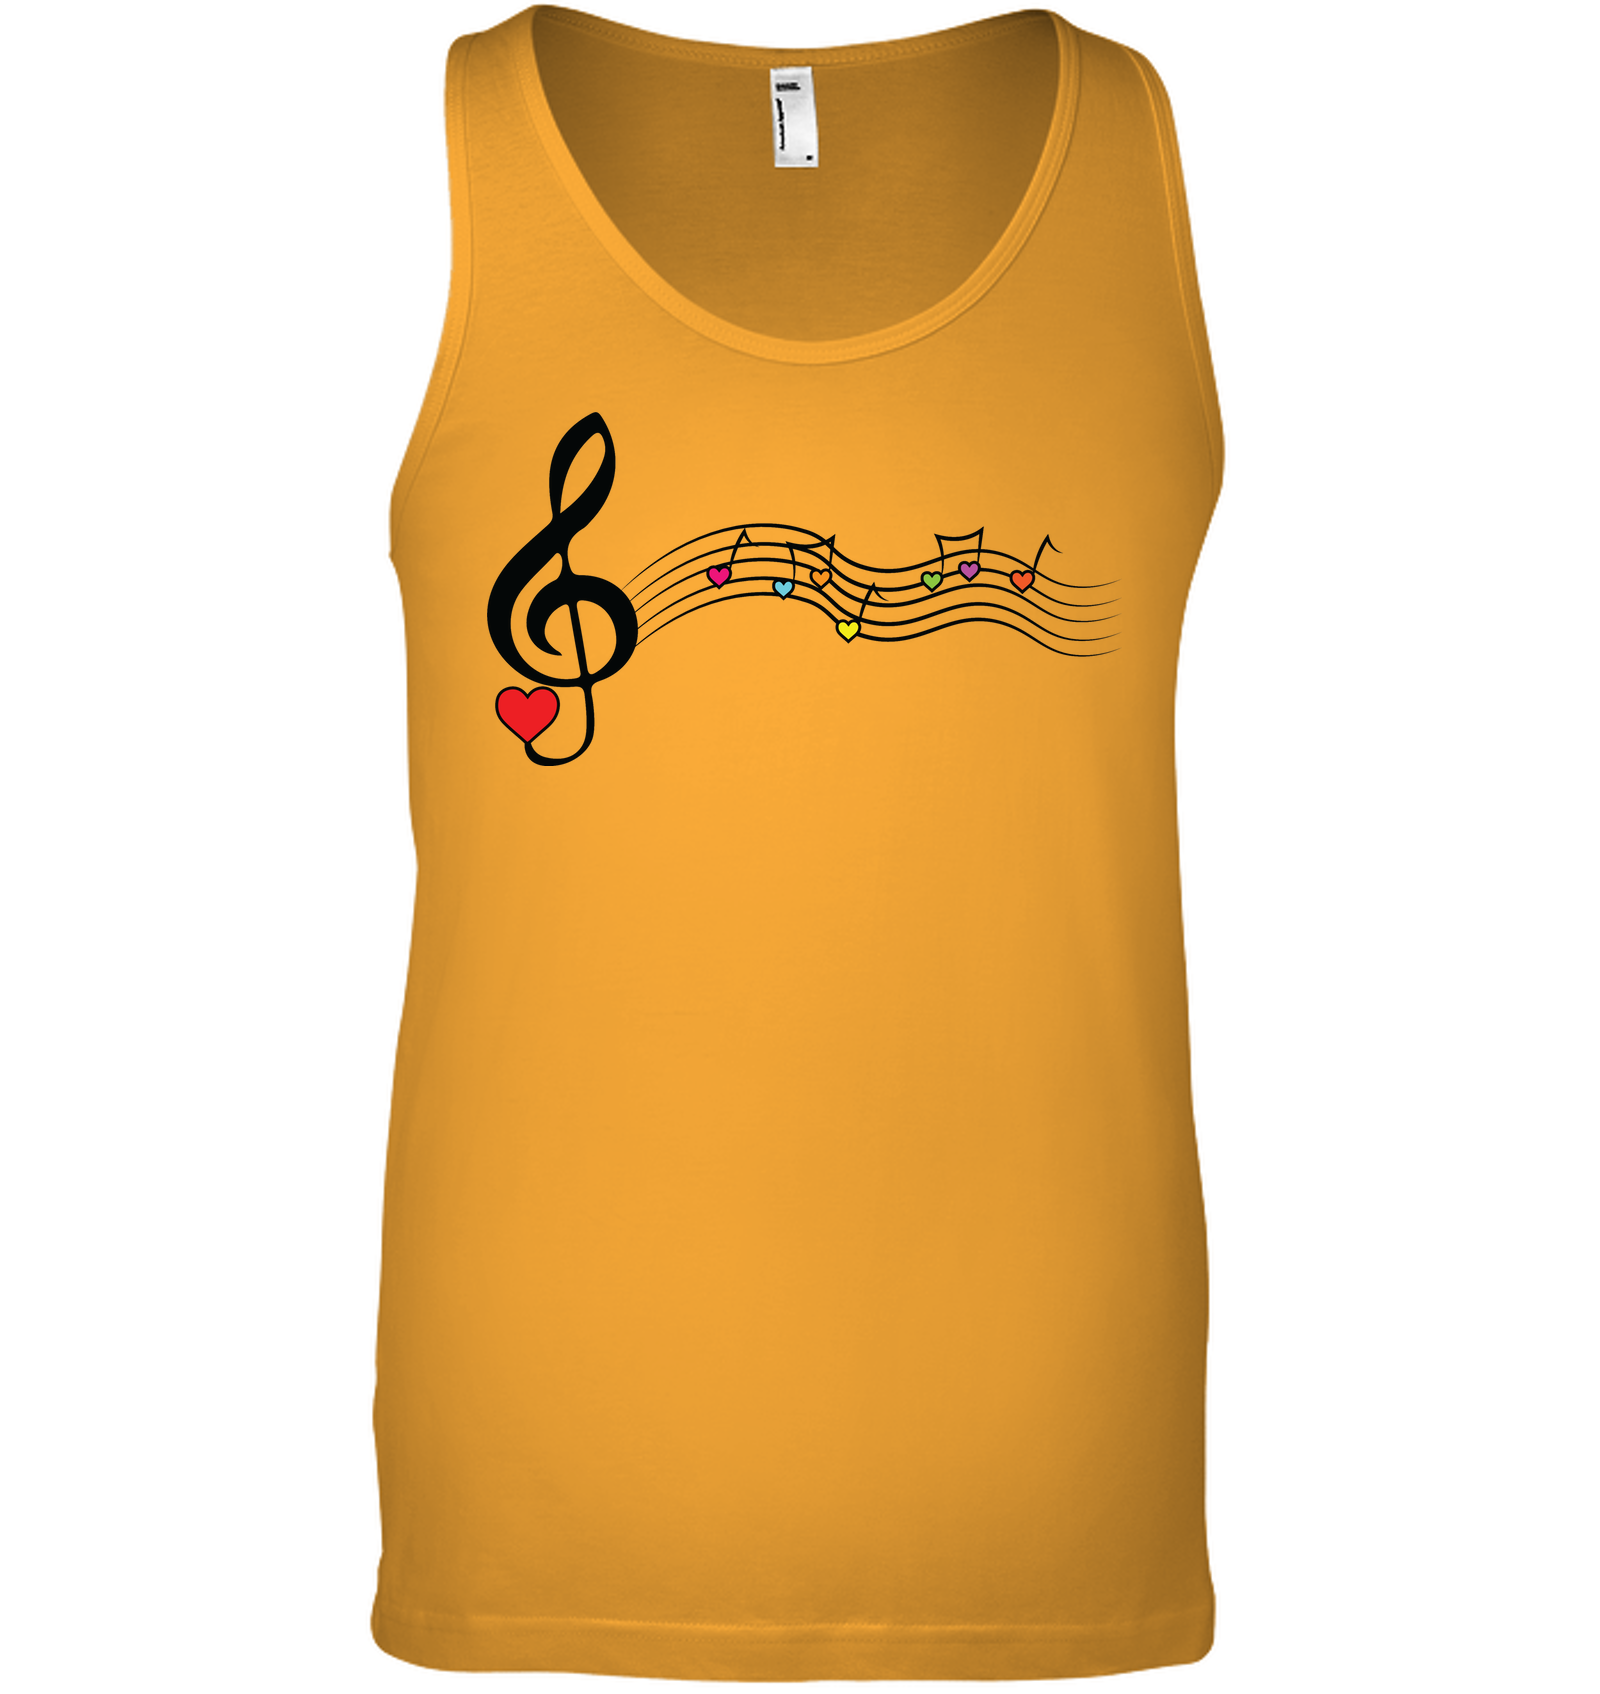 Musical Waves, Heart Notes and Colors - Bella + Canvas Unisex Jersey Tank